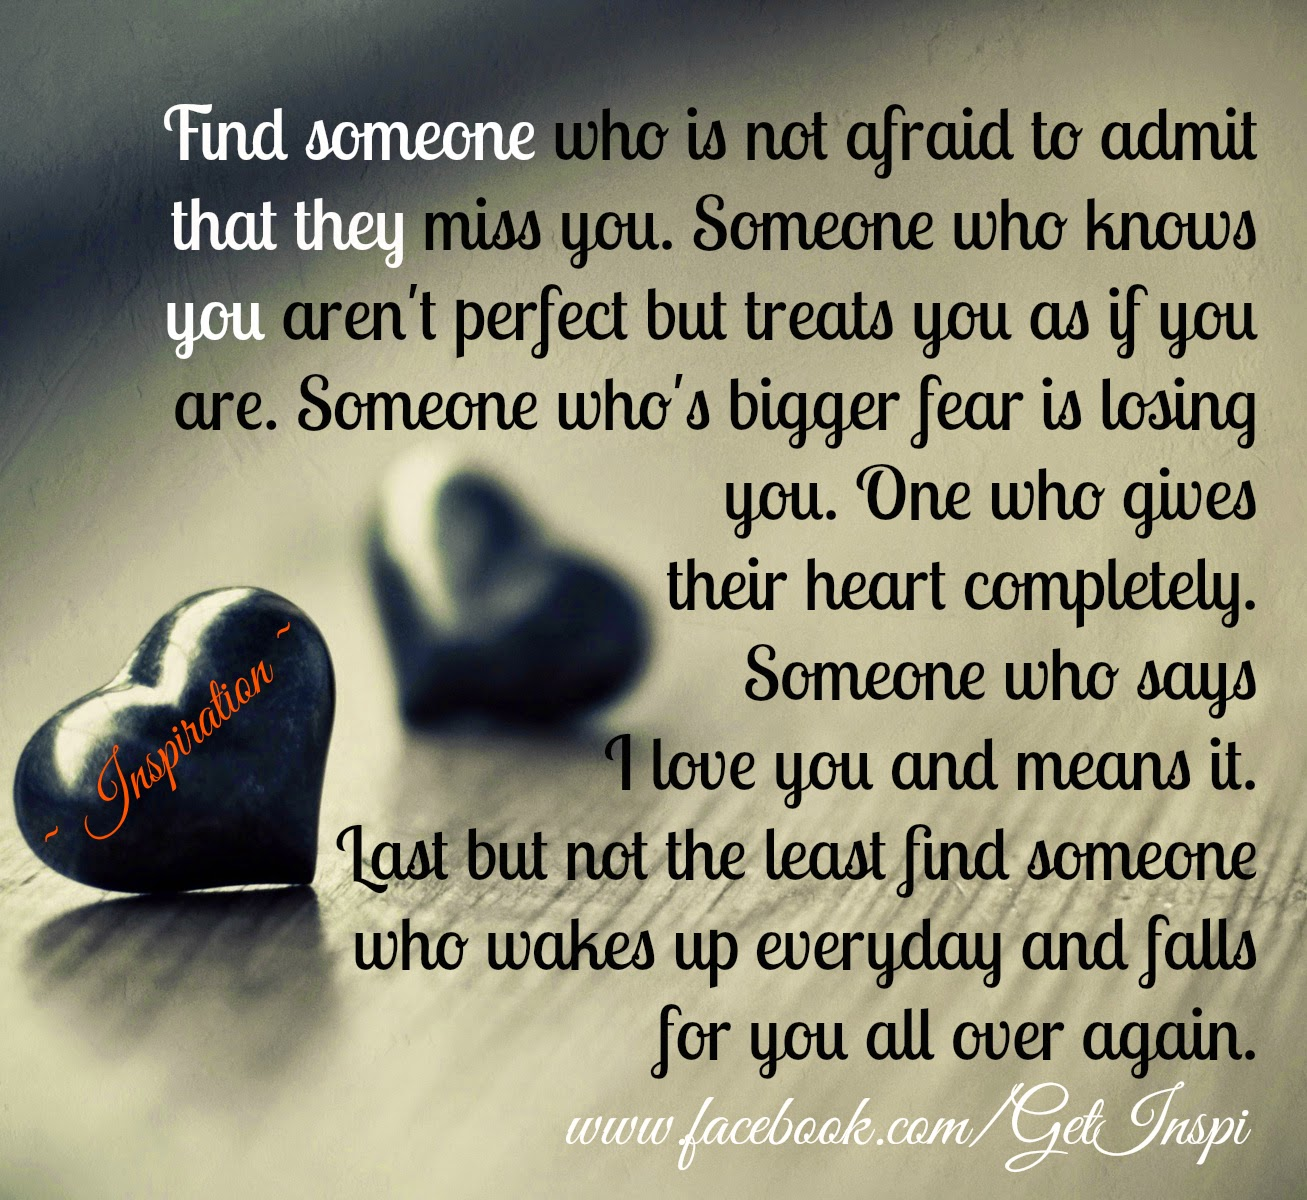 Find someone who is not afraid to admit that they miss you someone who